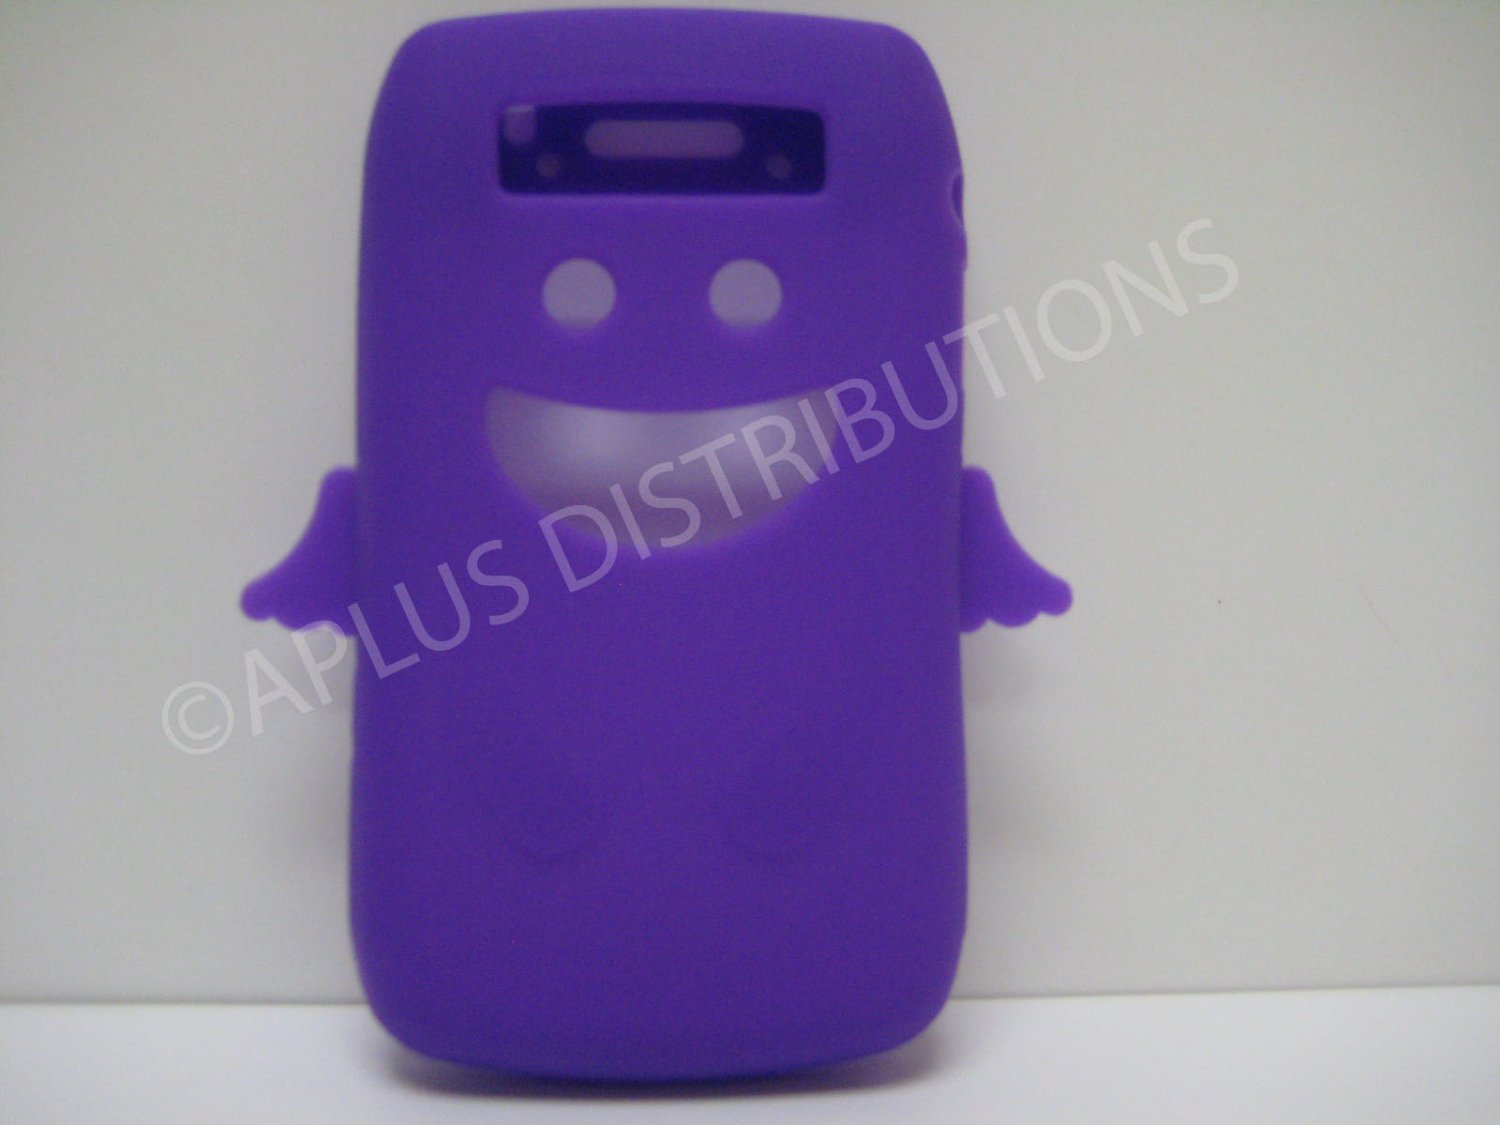 New Purple Angel Design Silicone Cover For Blackberry 9700 - (0181)